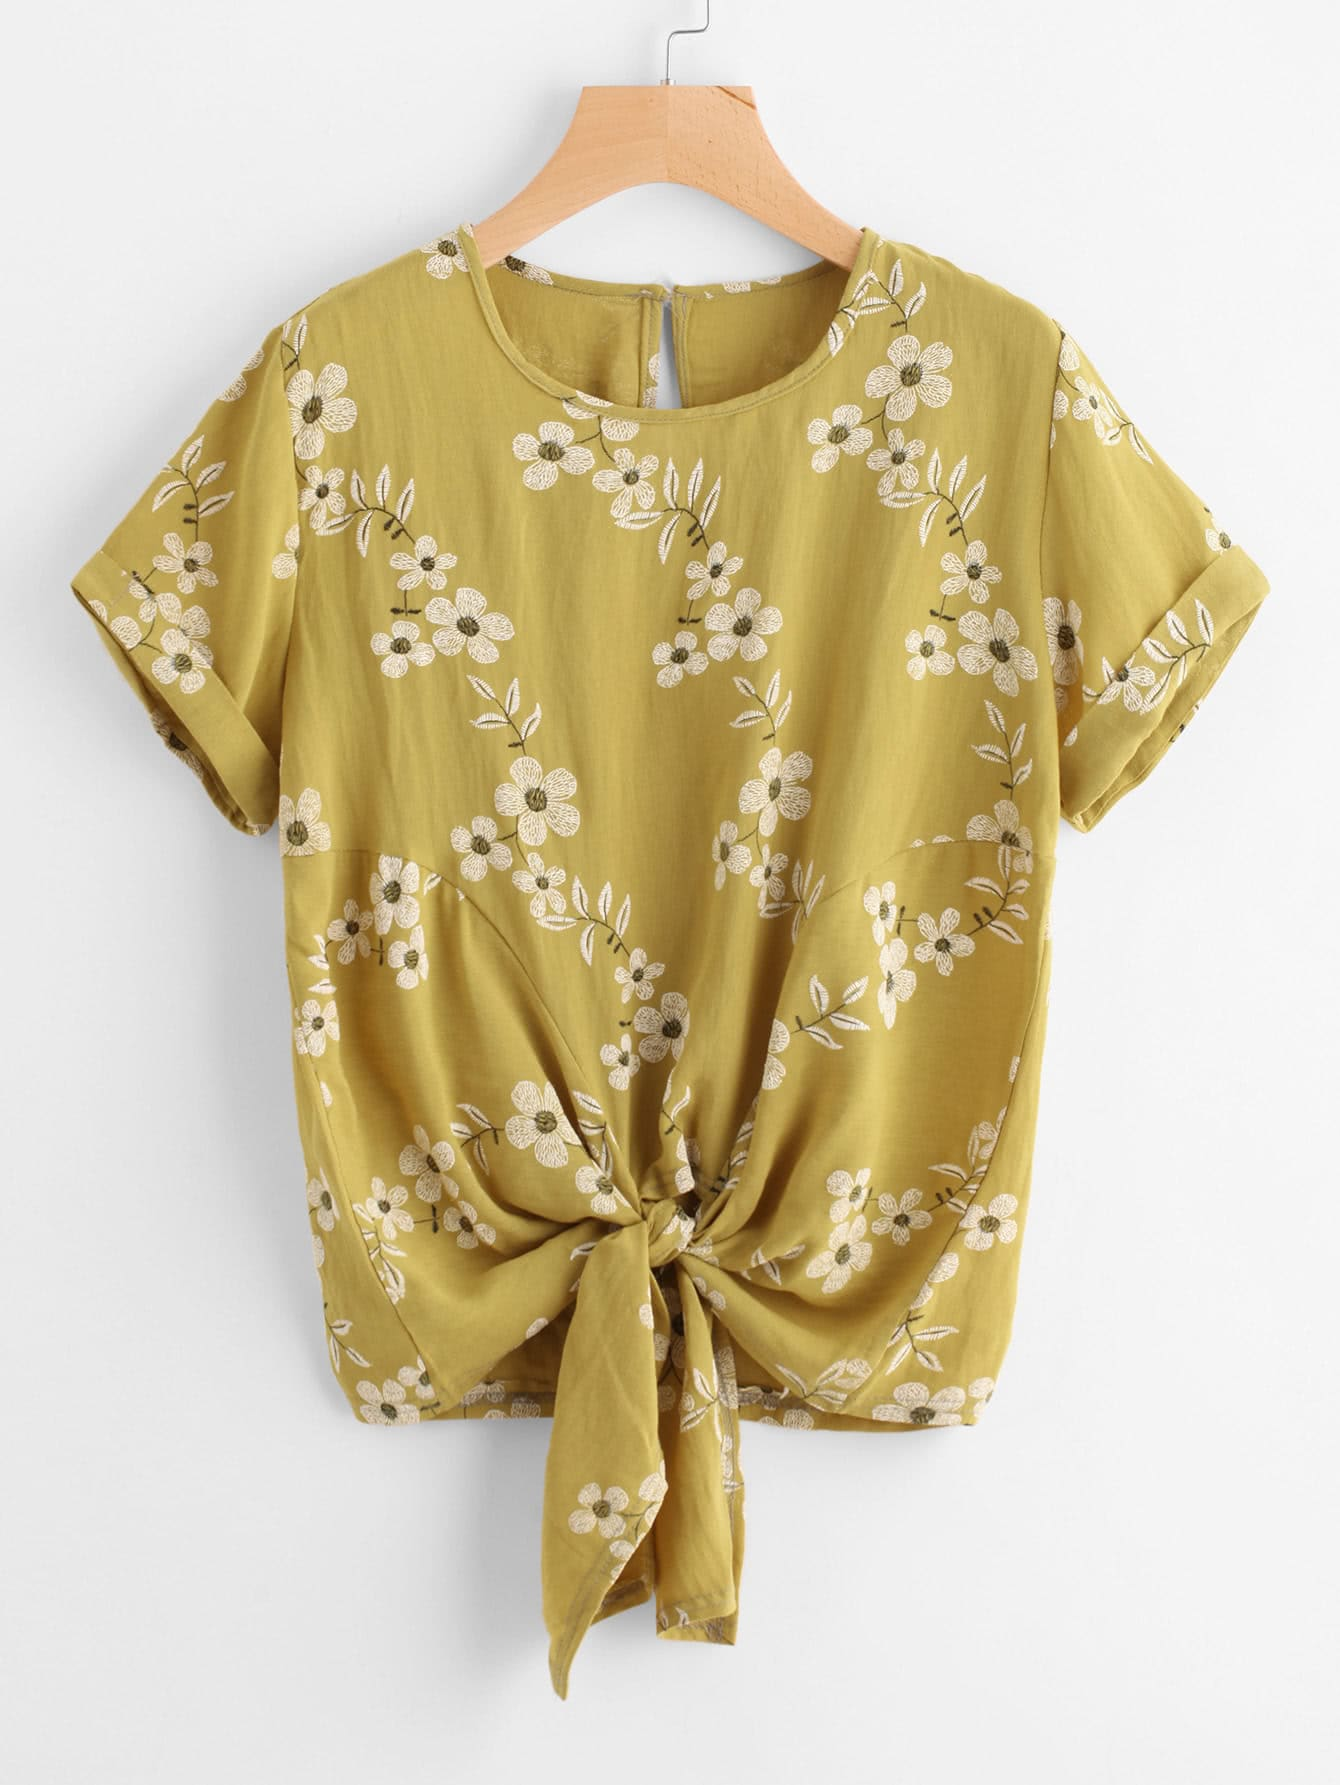 Floral Print Knot Front Cuffed Tee knot front tee